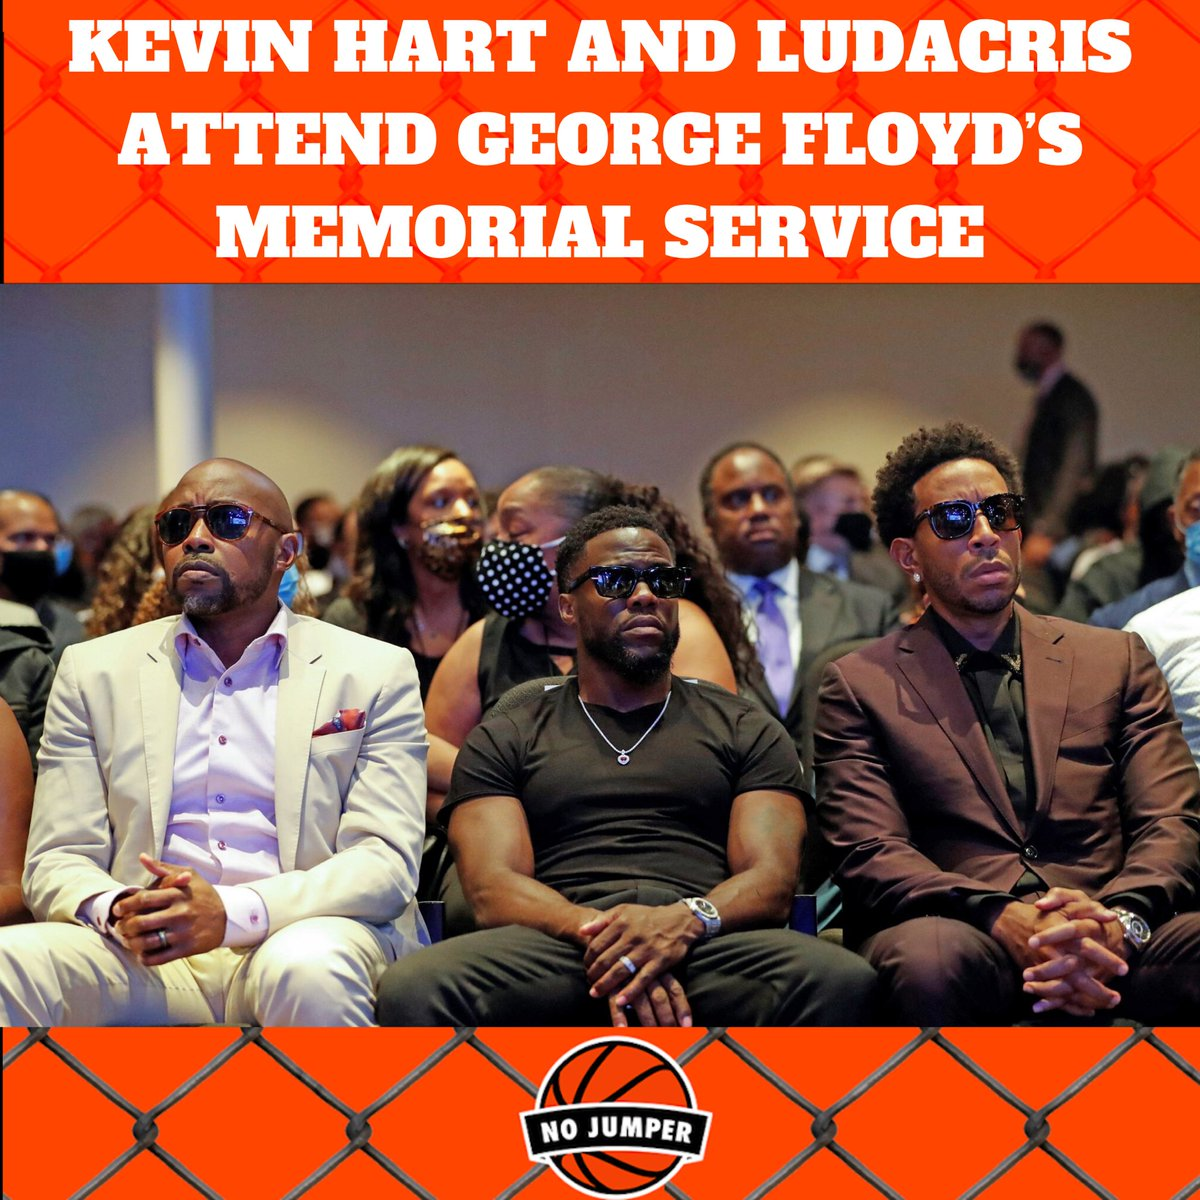 @KevinHart4real and @Ludacris attended George Floyd's memorial service in Minneapolis today.